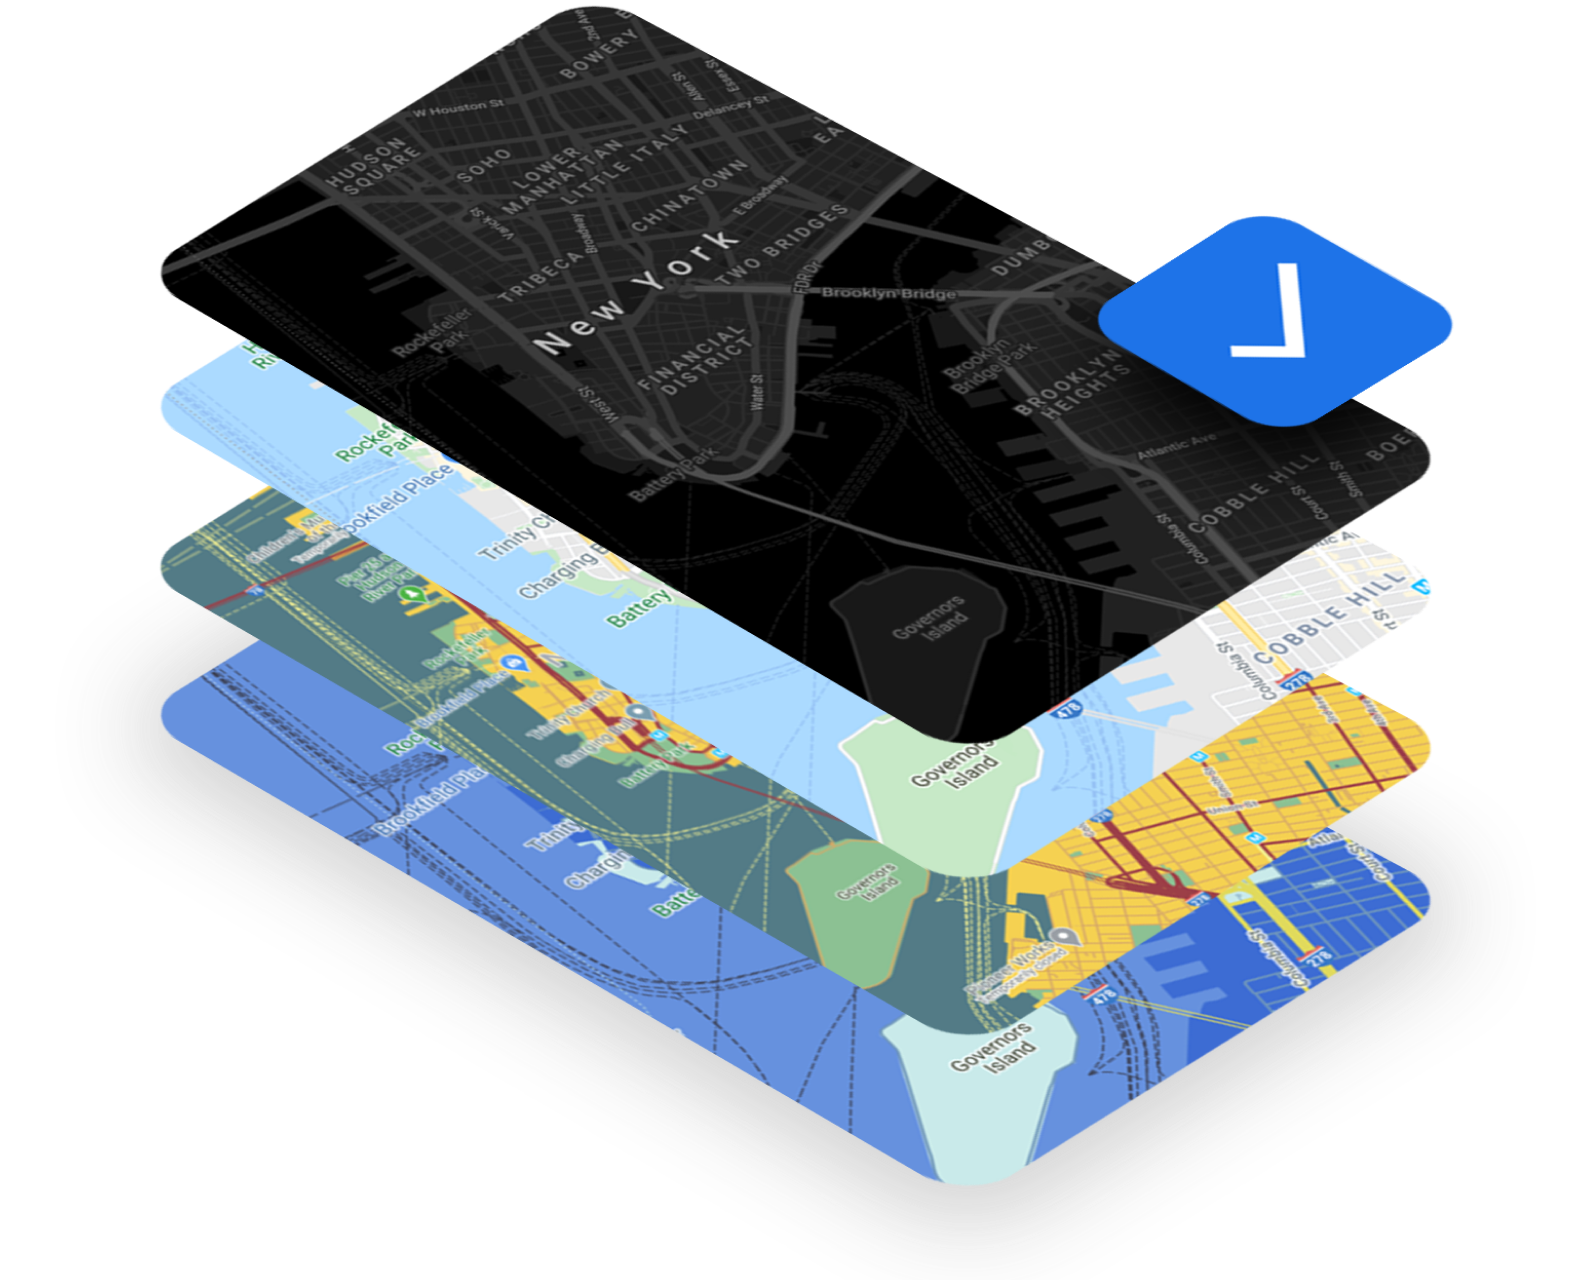 Google Maps in several different colors and styles